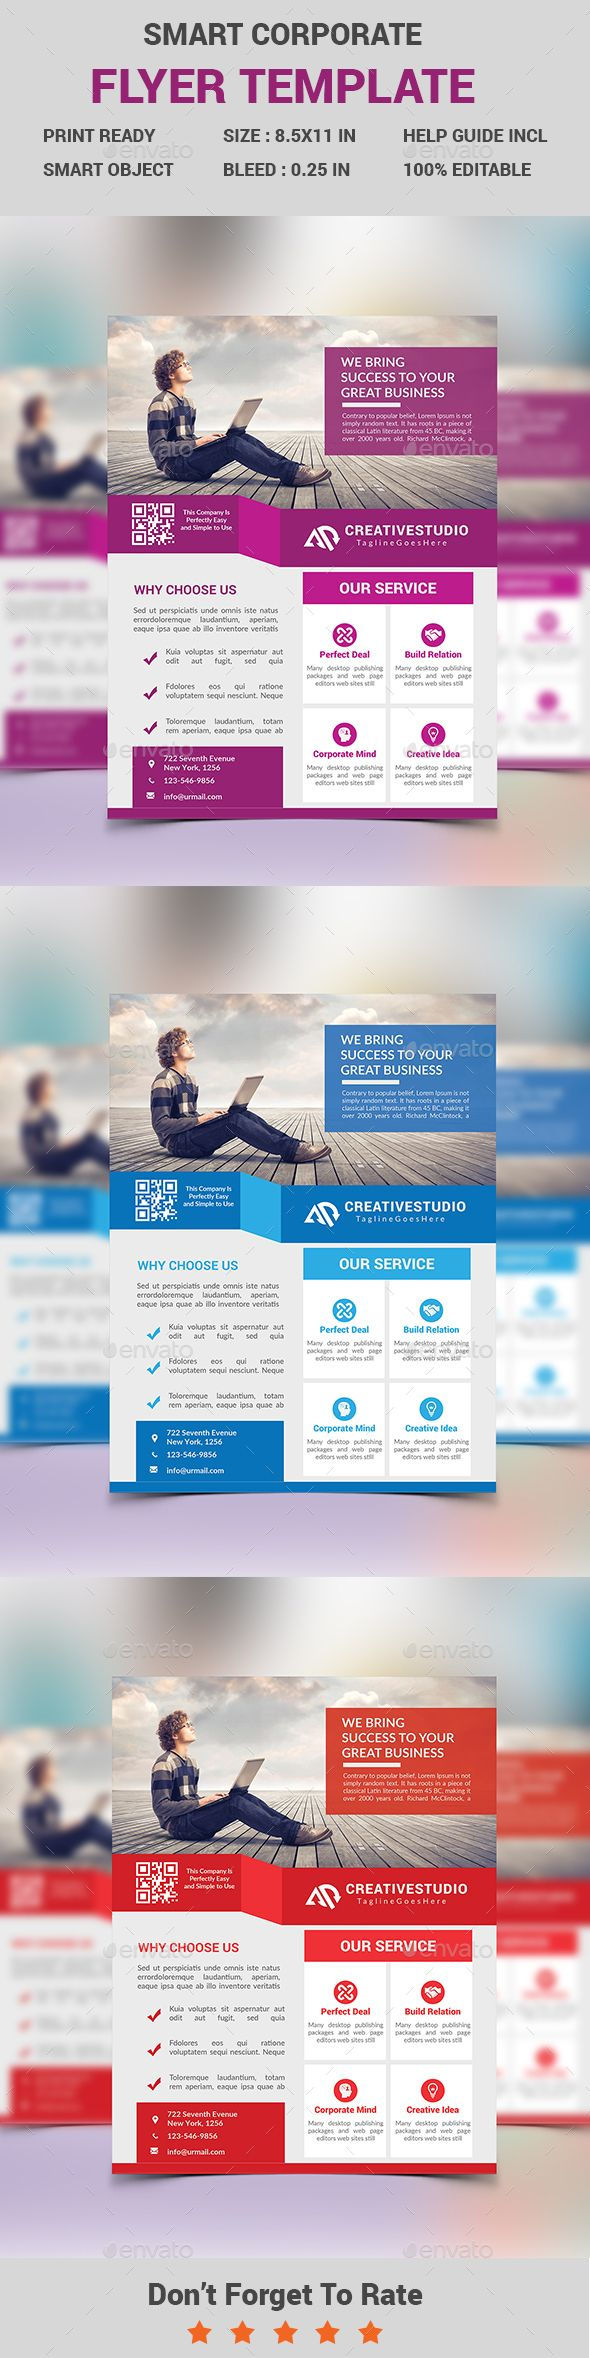 Smart Corporate Business Flyer Template PSD #design Download: http://graphicriver.net/item/smart-corporate-business-flyer/13966637?ref=ksioks